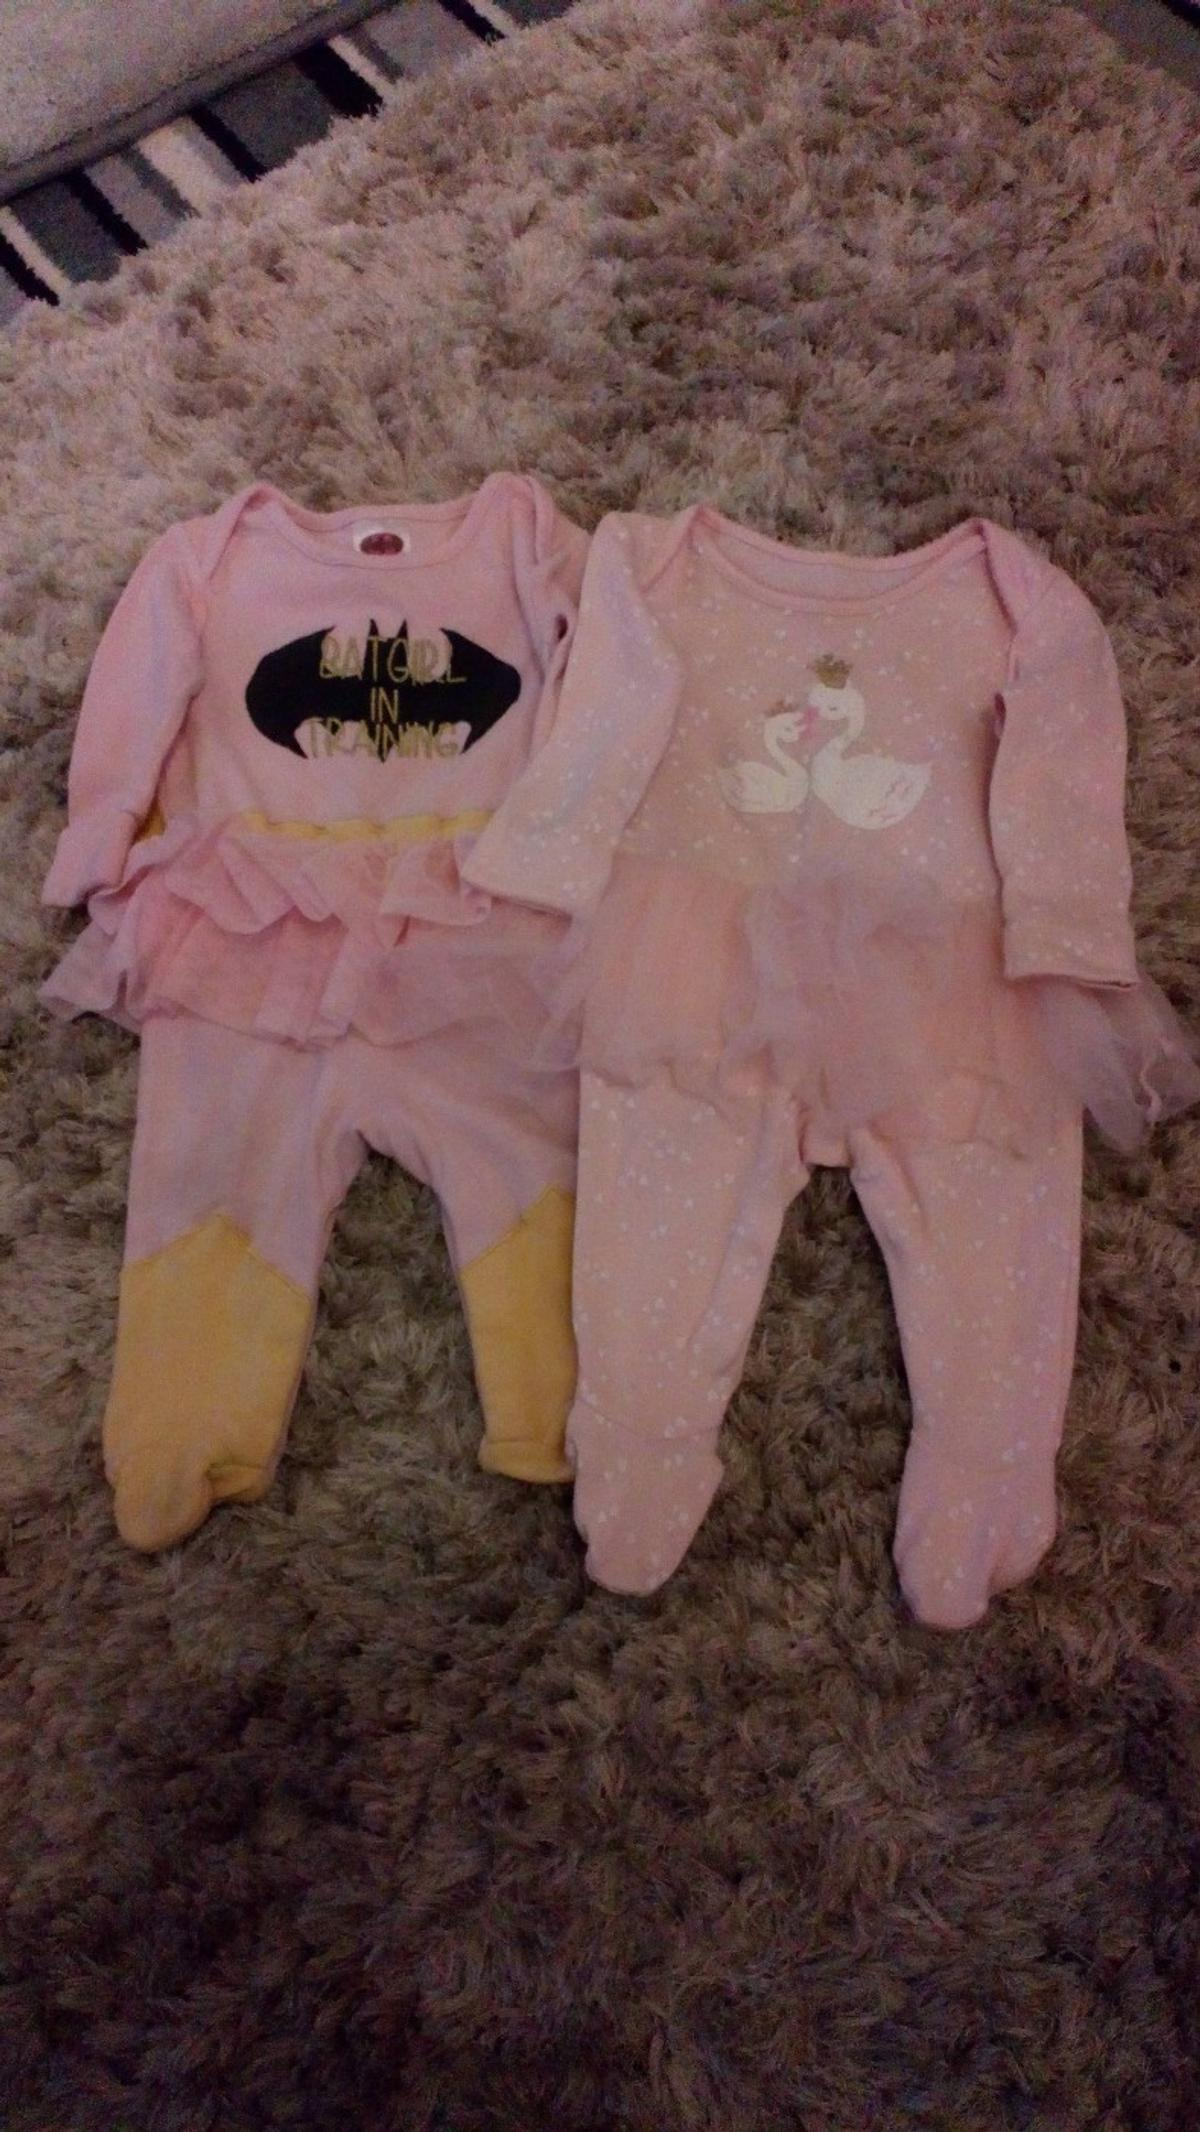 Baby Girls tutu Sleepsuits Swan Sleepsuit - Age 0-3 Months Batgirl Sleepsuit - Age 3-6 Months Both in good condition  Collection from DY5 or can post if buyer covers postage